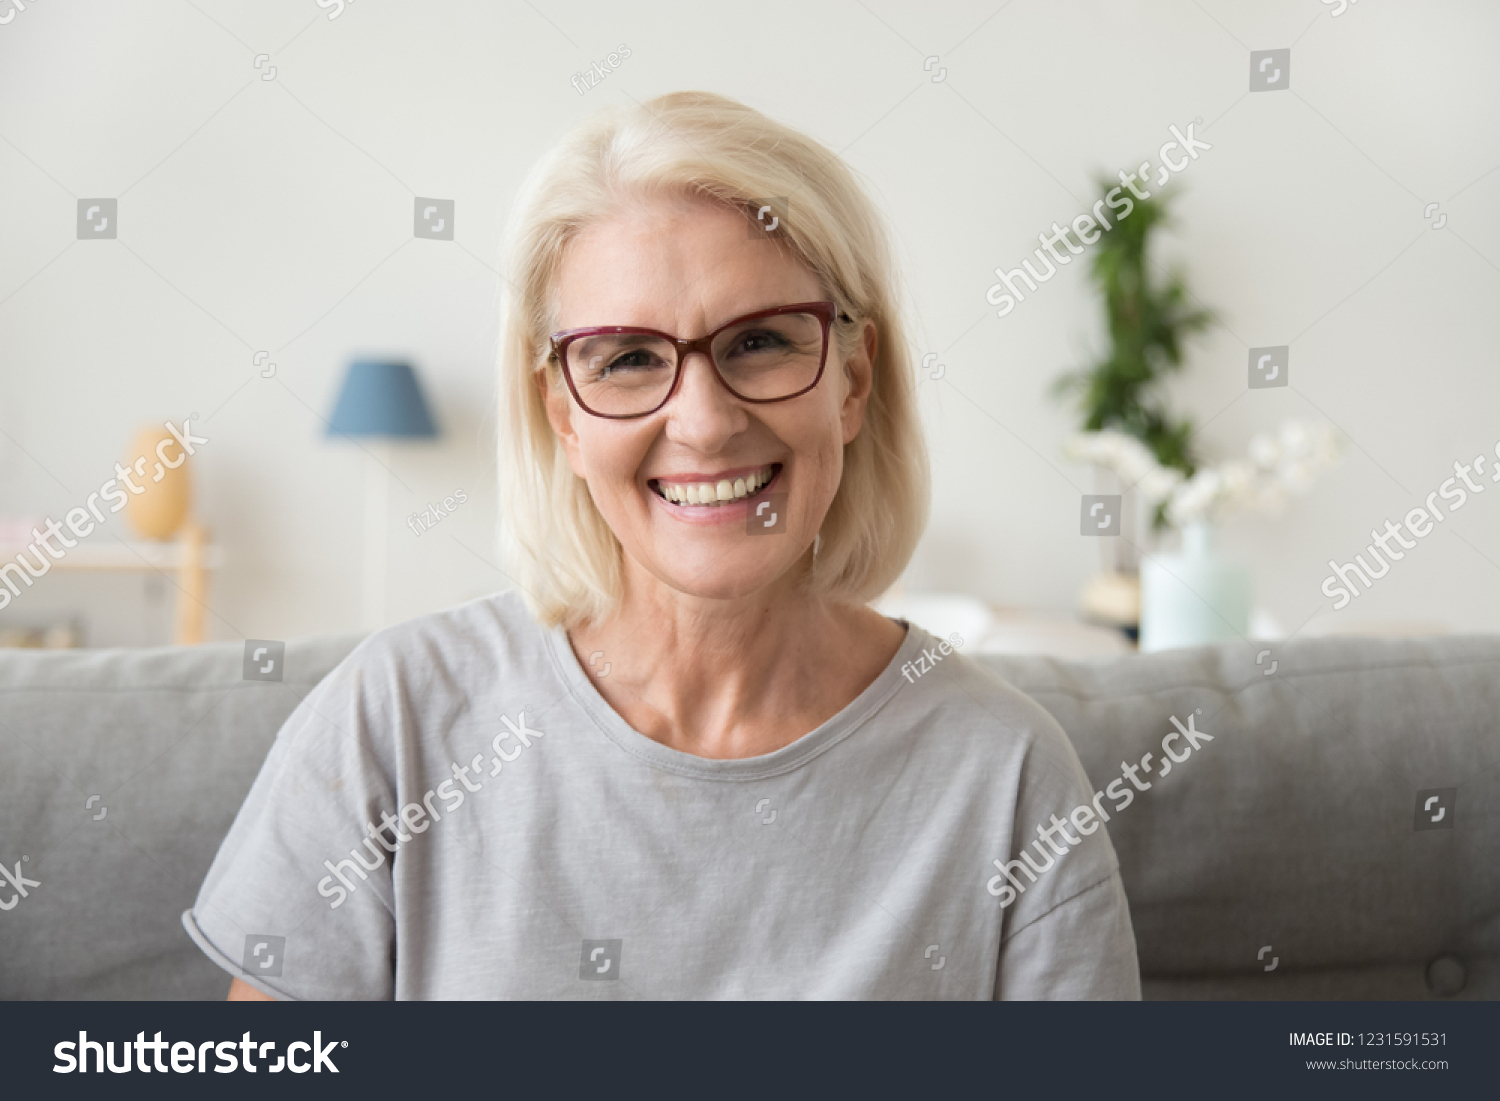 Smiling middle aged mature grey haired woman looking at camera, happy old lady in glasses posing at home indoor, positive single senior retired female sitting on sofa in living room headshot portrait #1231591531